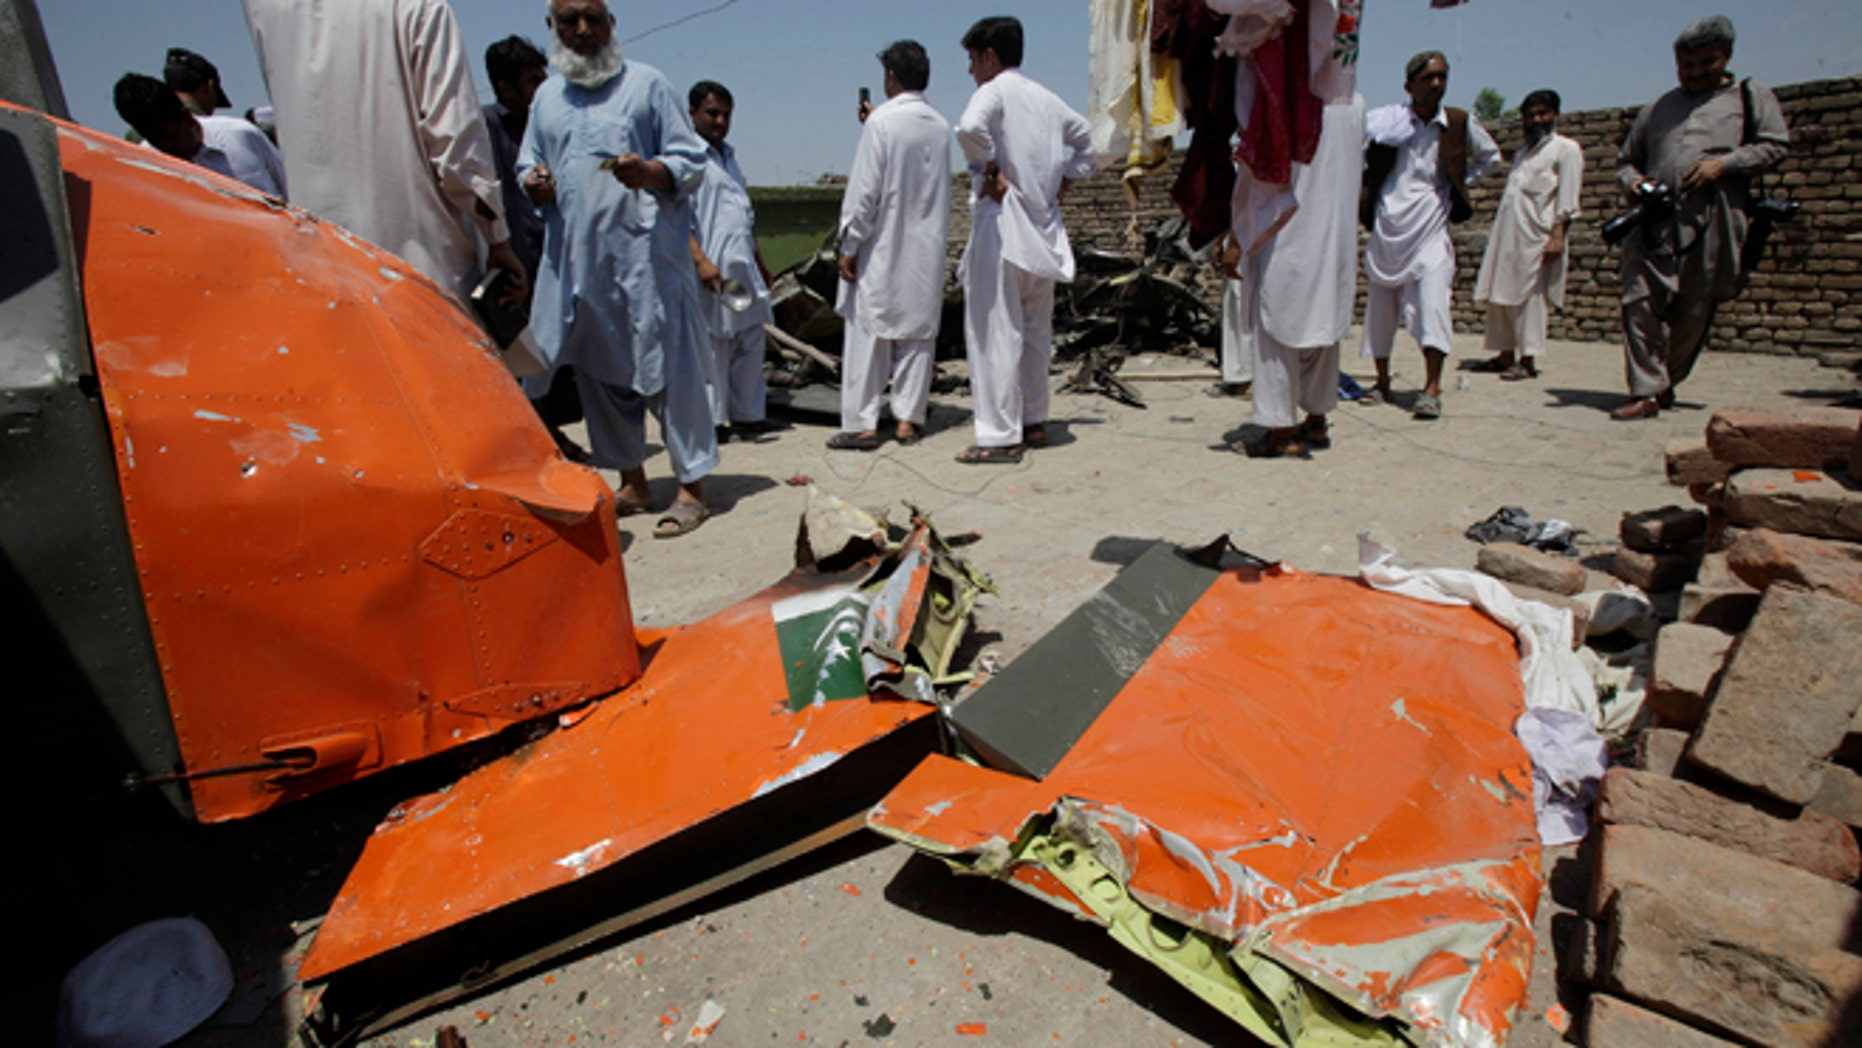 May 17, 2012: People on a rooftop look at a wreckage of a plane which crashed in Nowshera, 21 miles east of Peshawar, Pakistan.